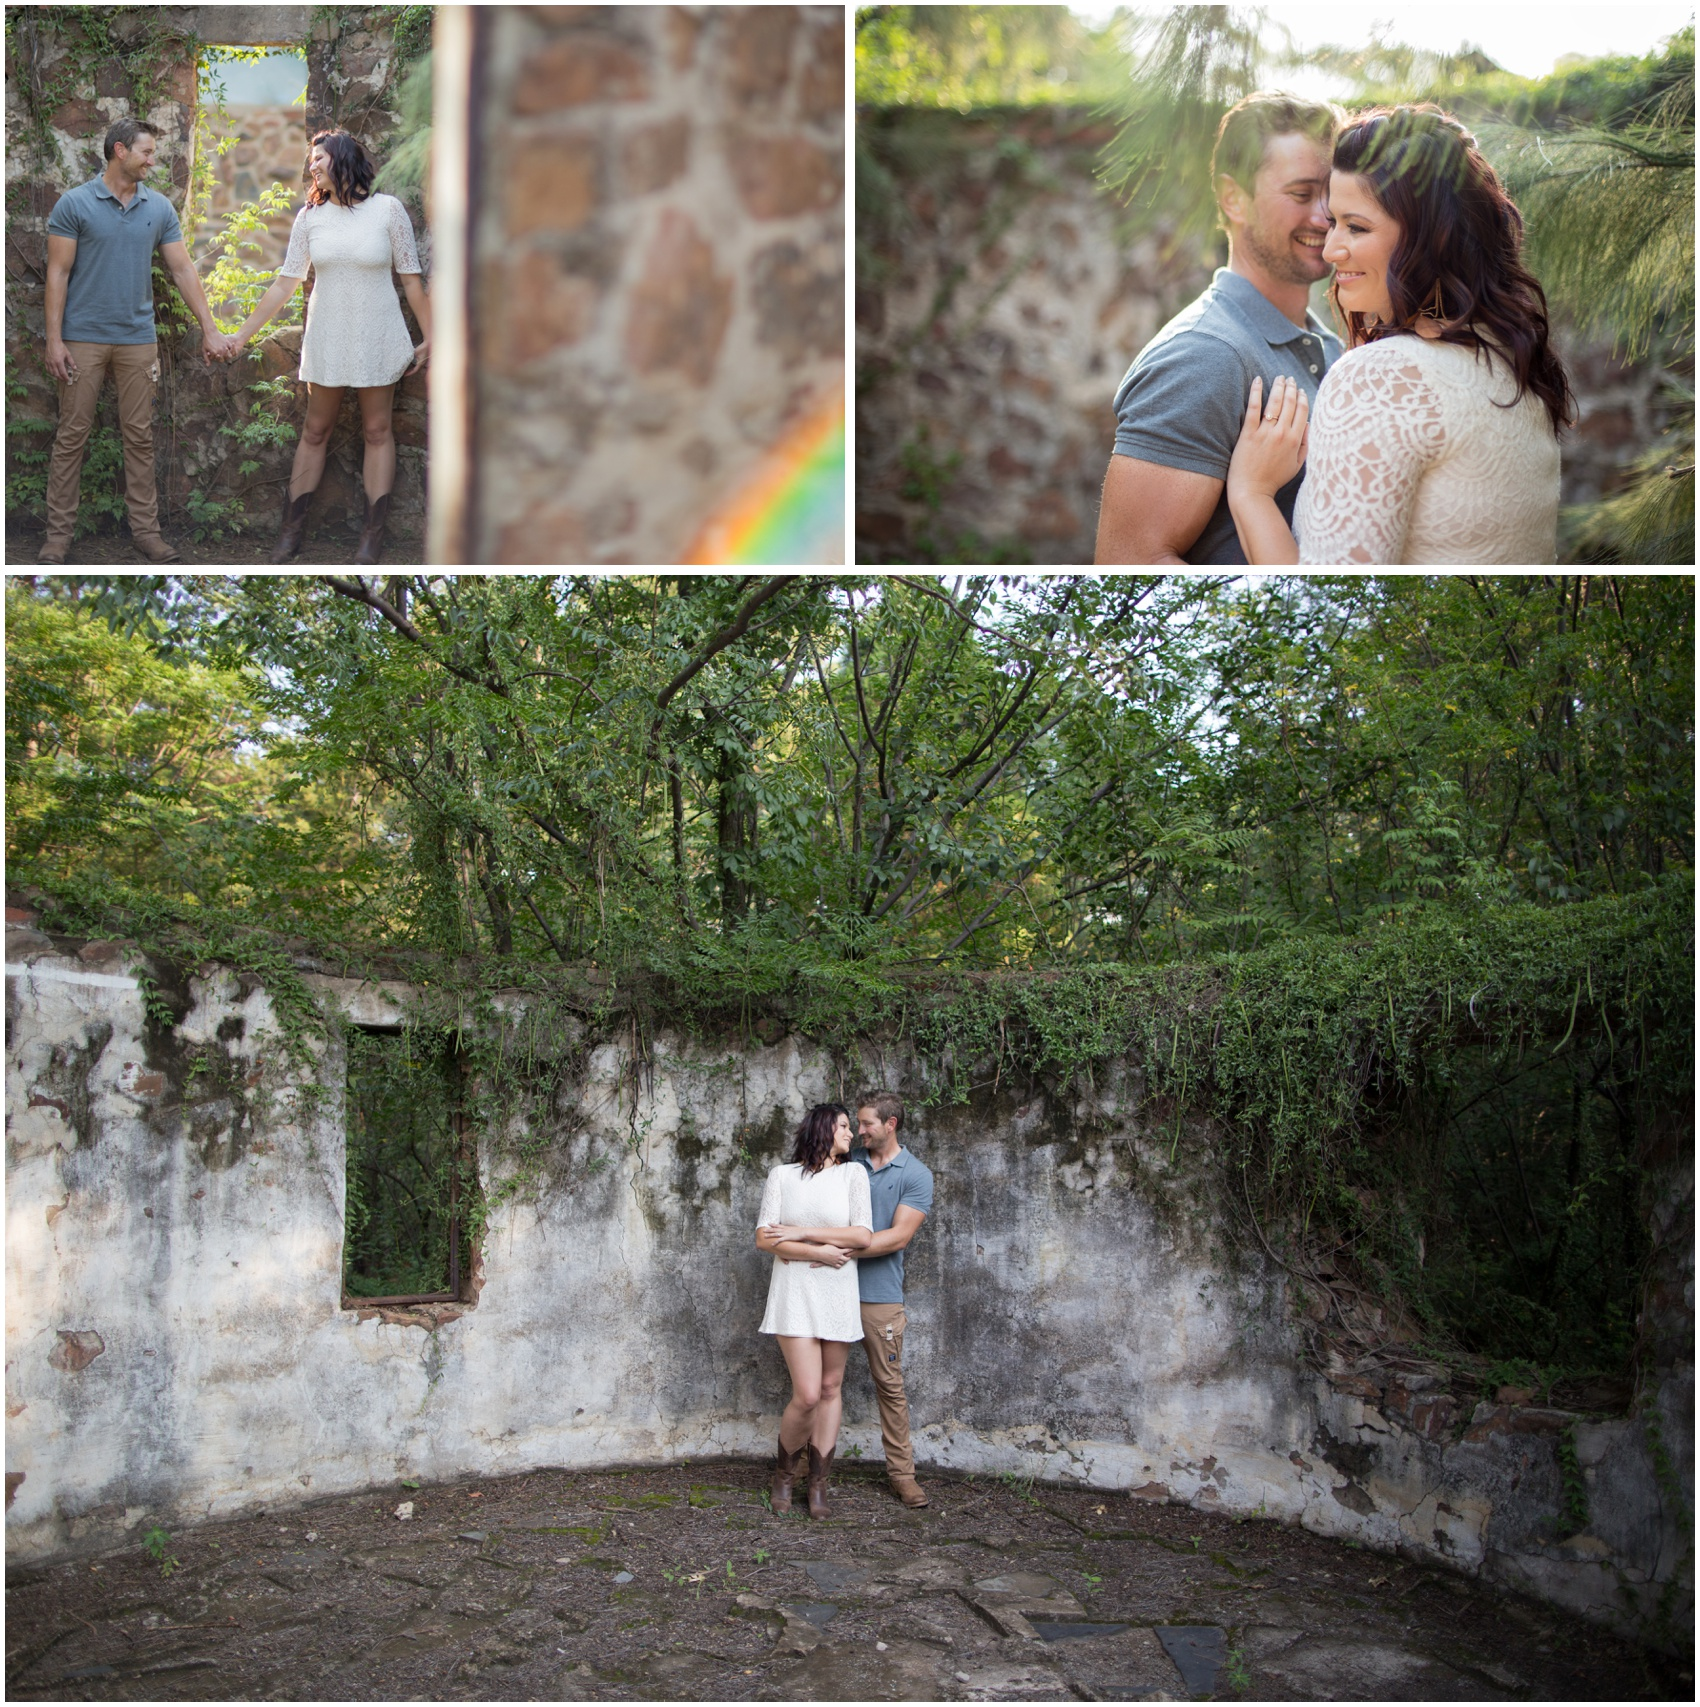 rosemary_hill_engagement_shoot_stephanie_and_jannie_01